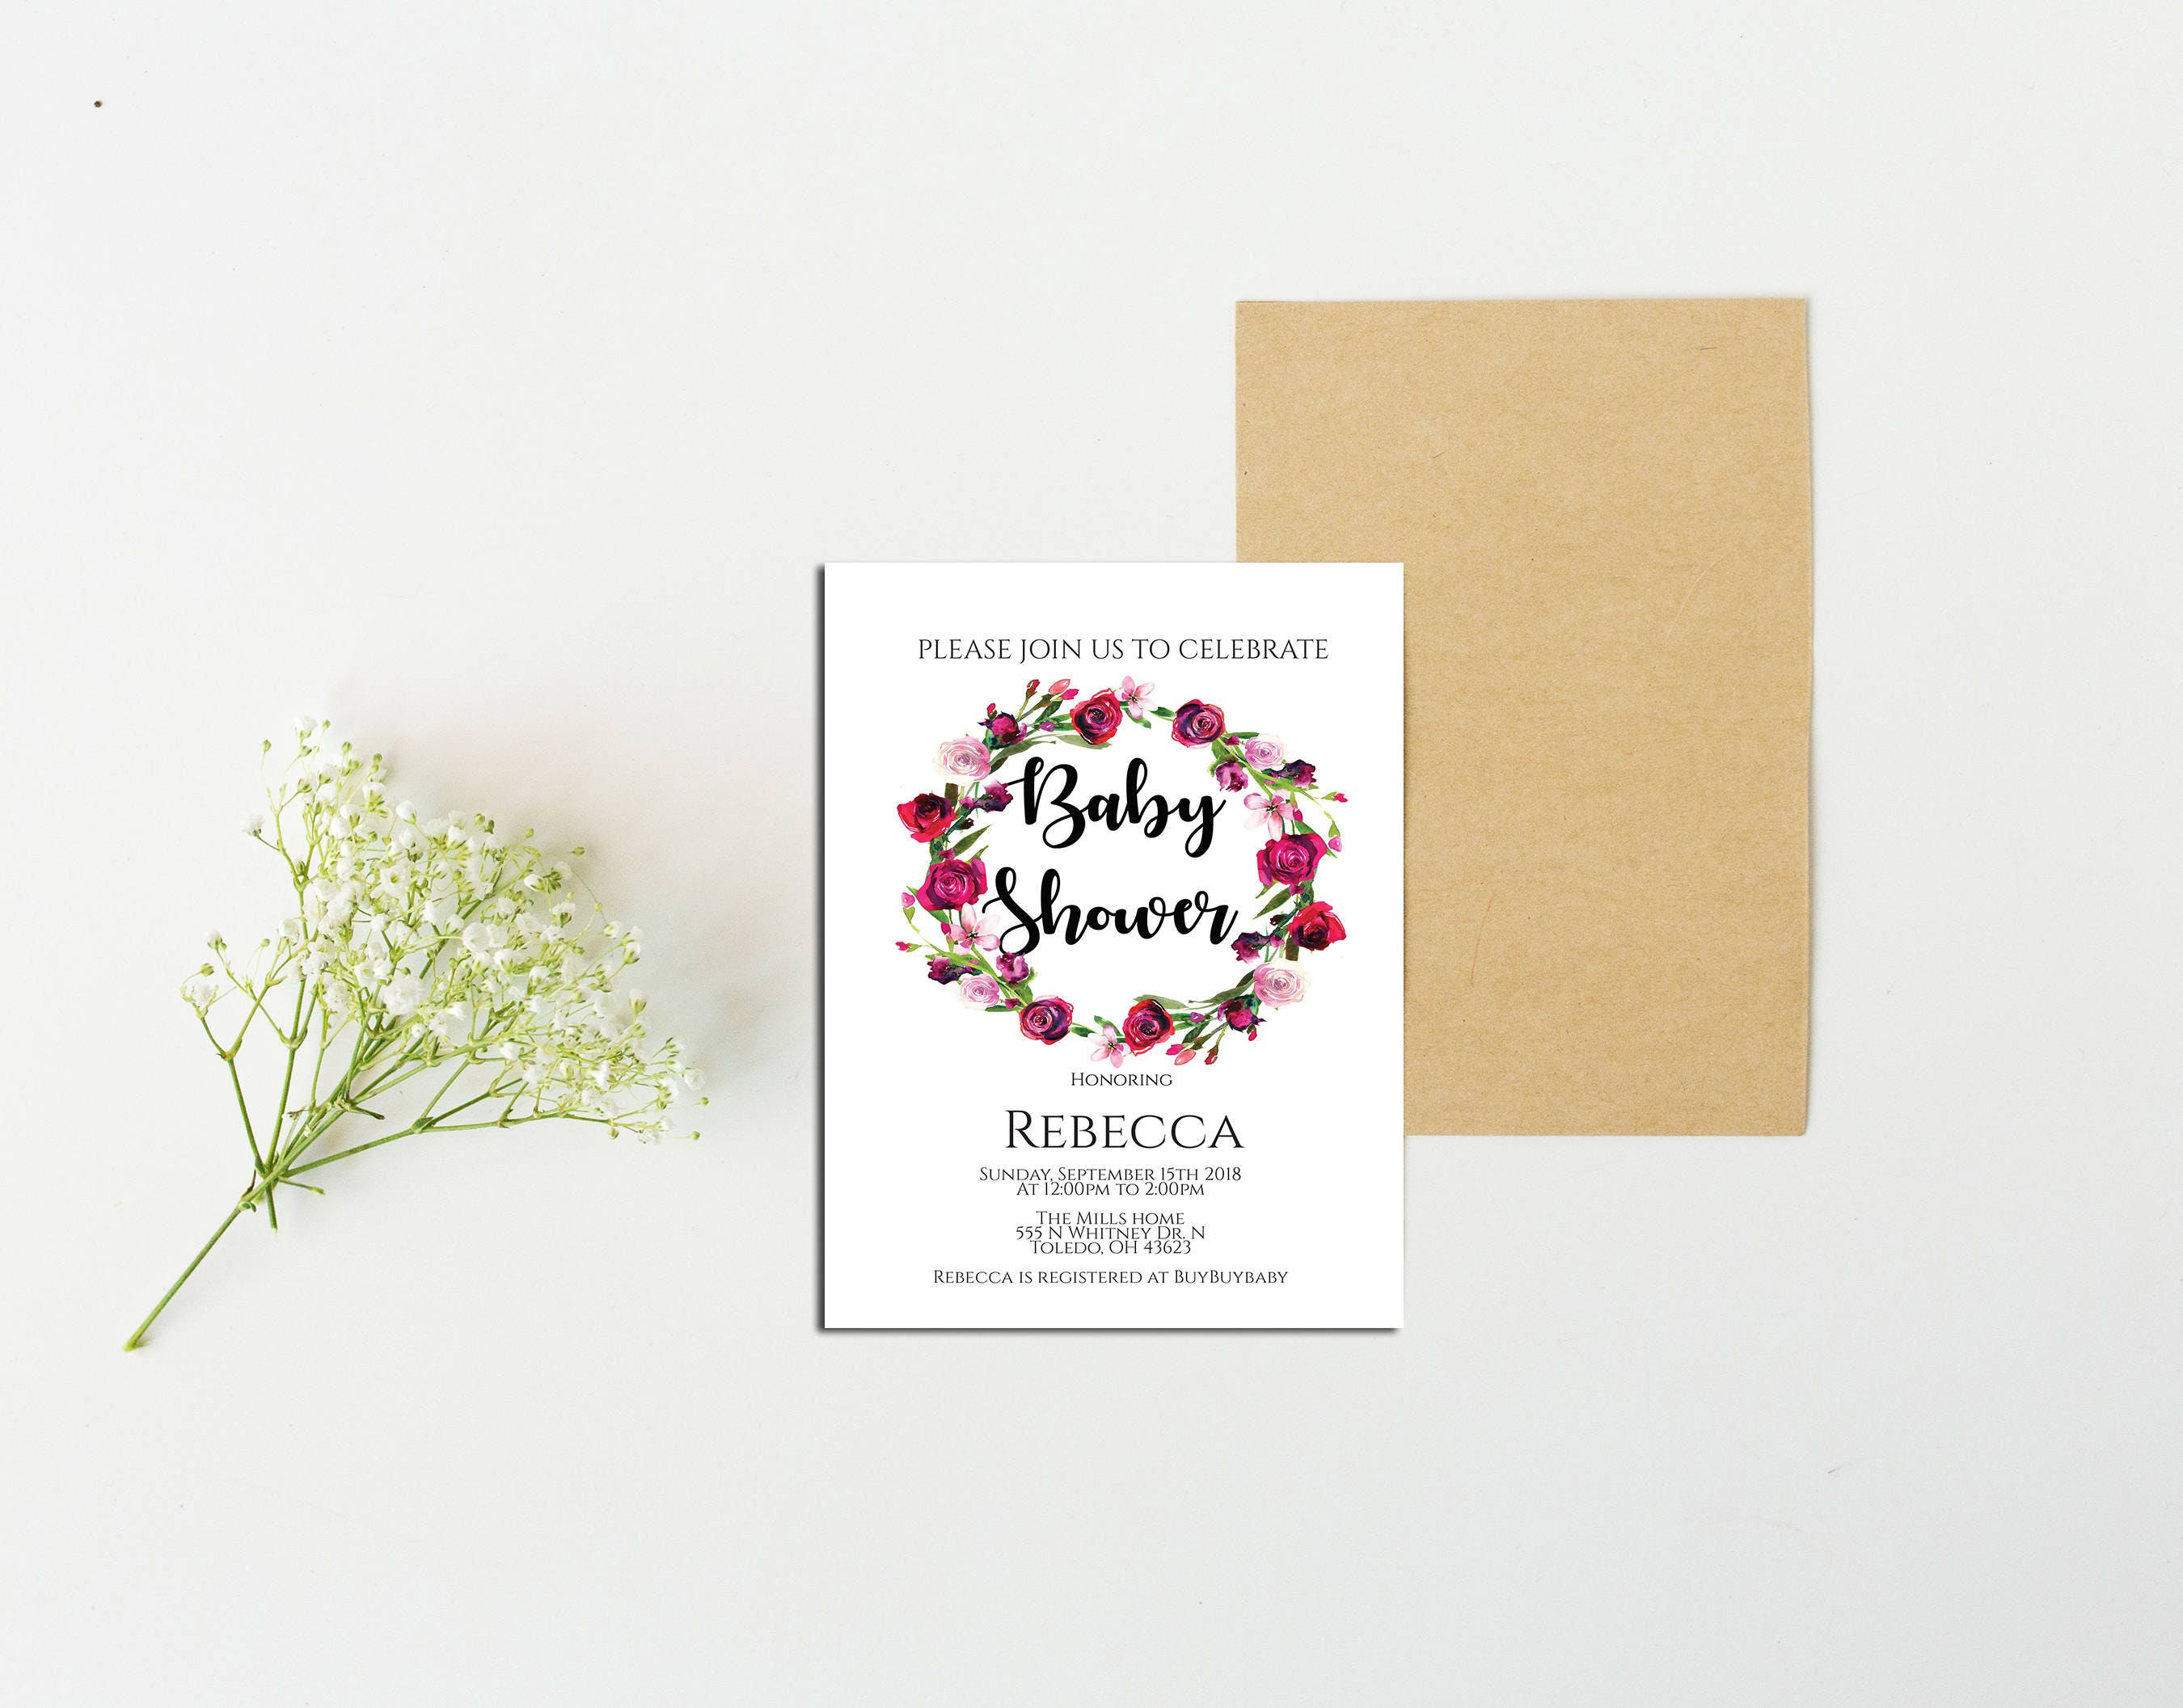 floral baby shower invitation,baby shower invite,baby shower,floral ...